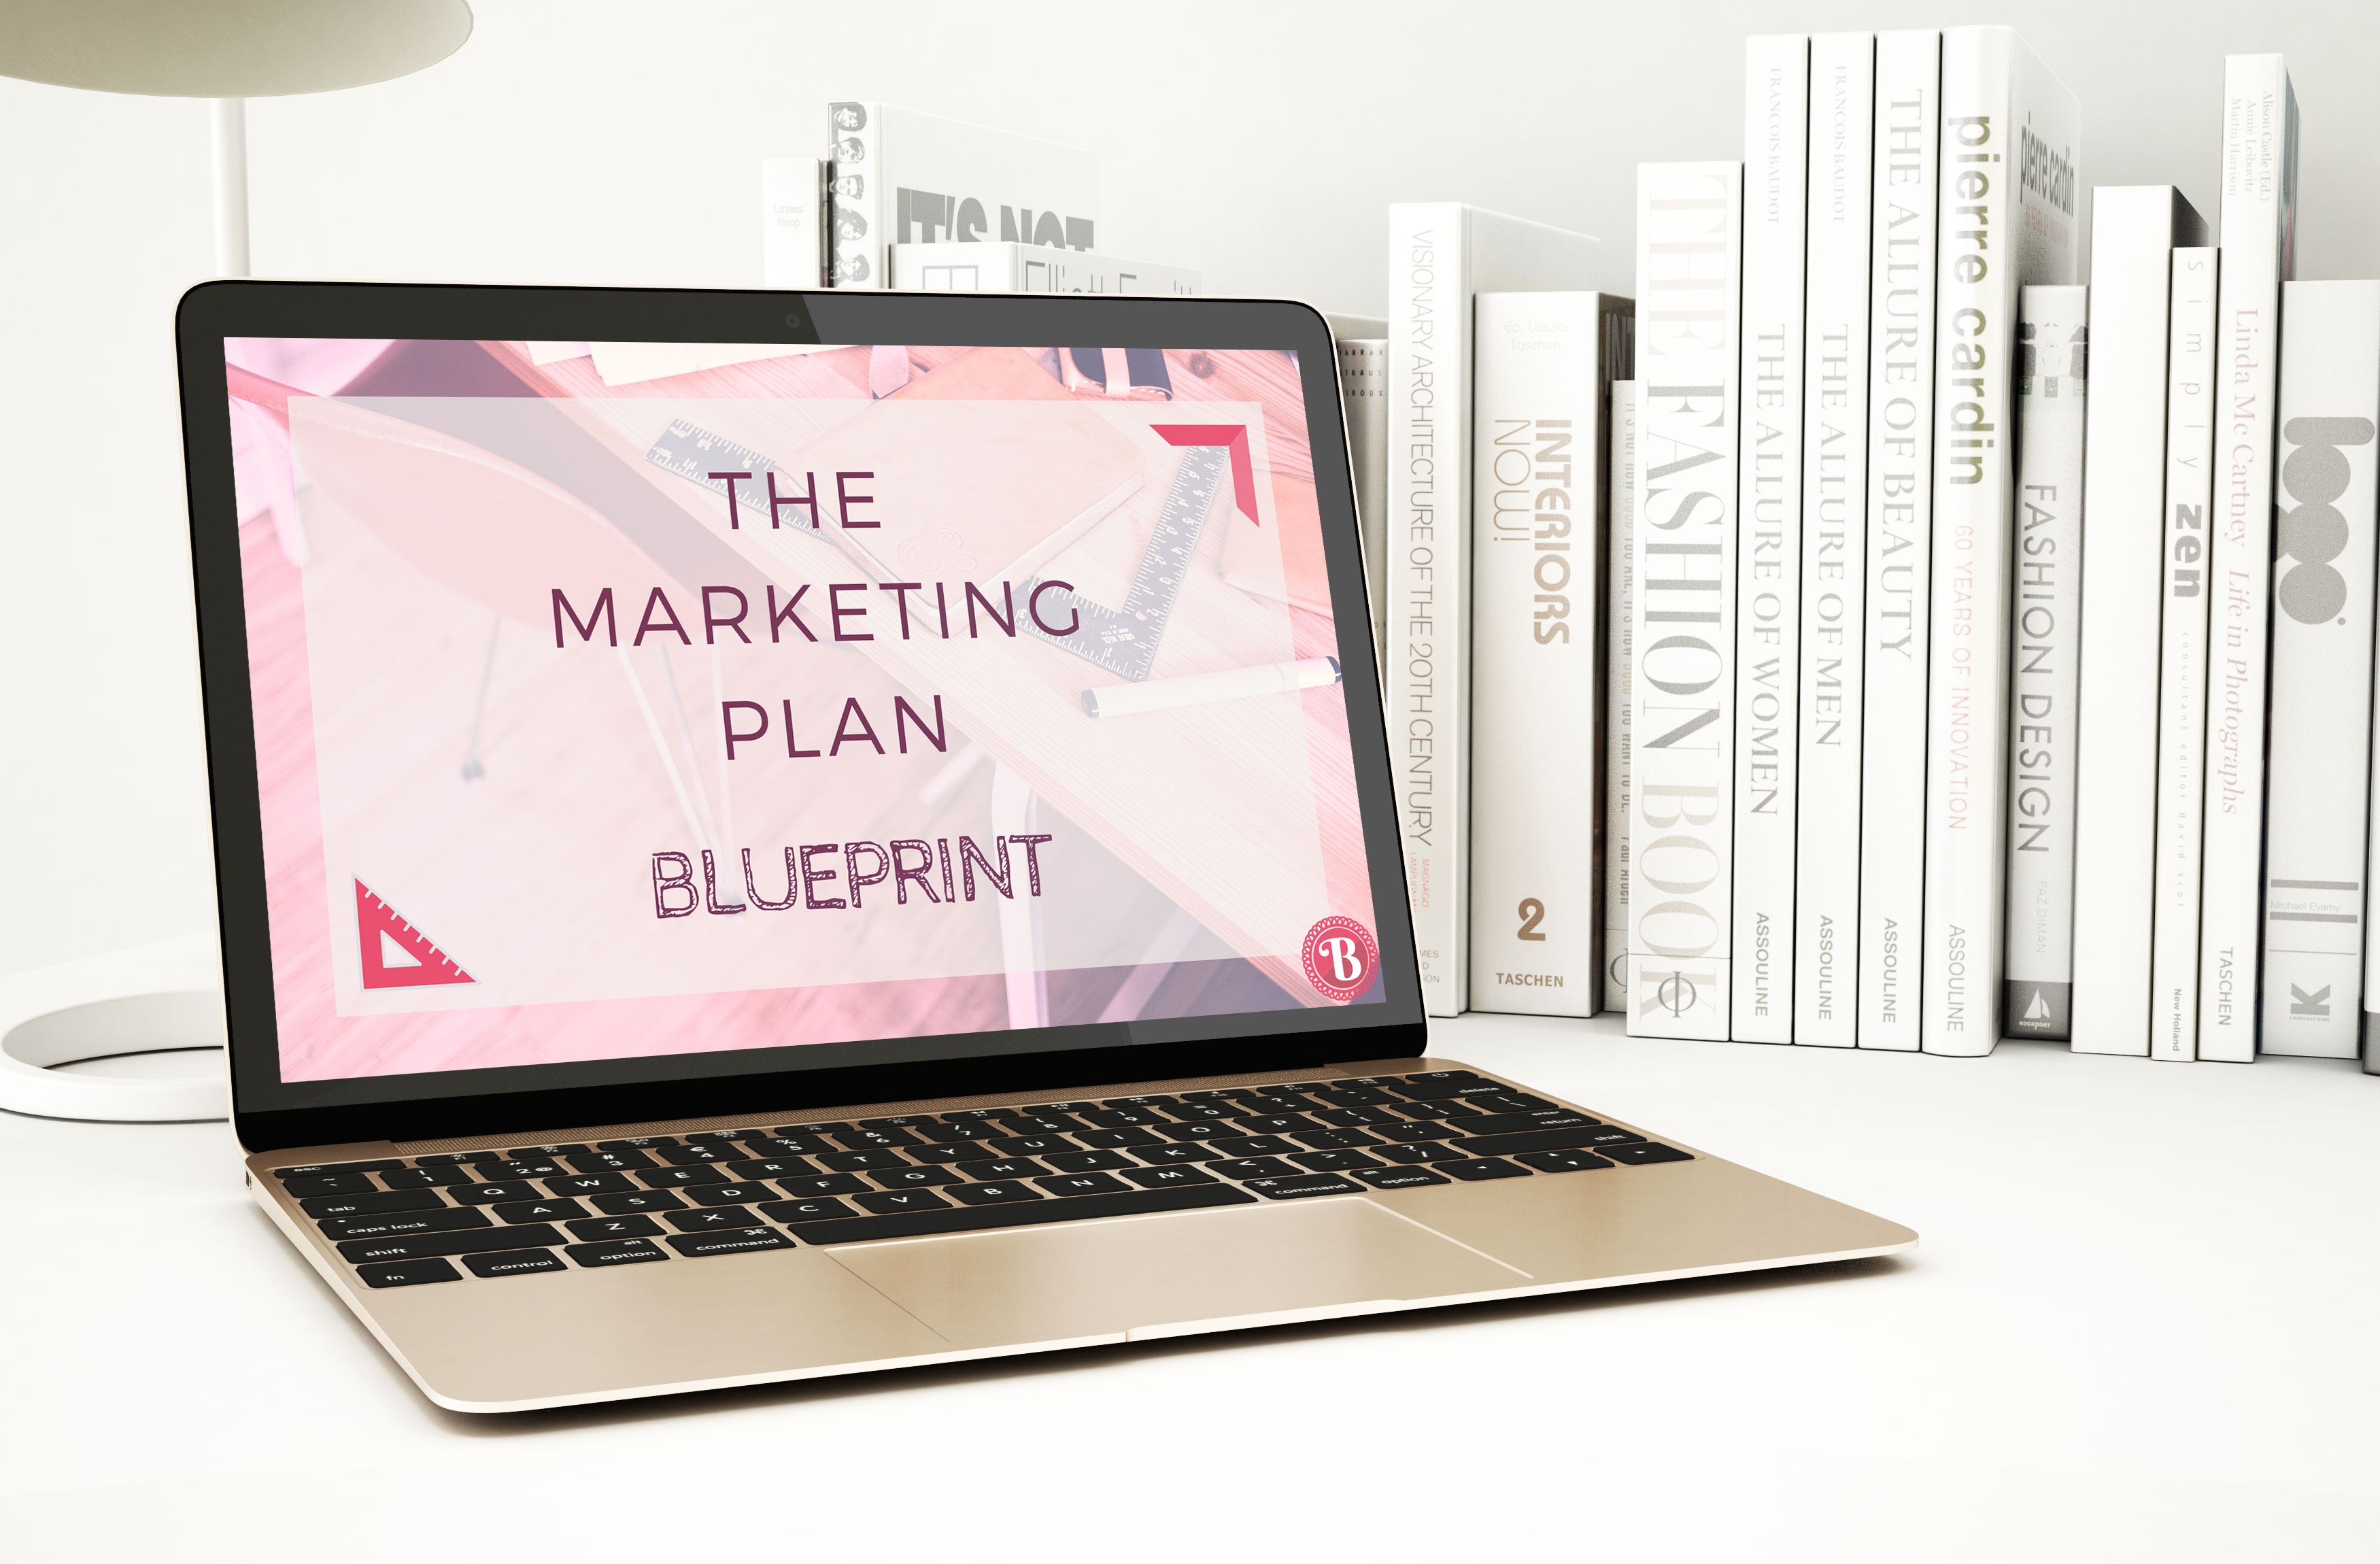 The Marketing Plan Blueprint - Writing a Marketing Plan